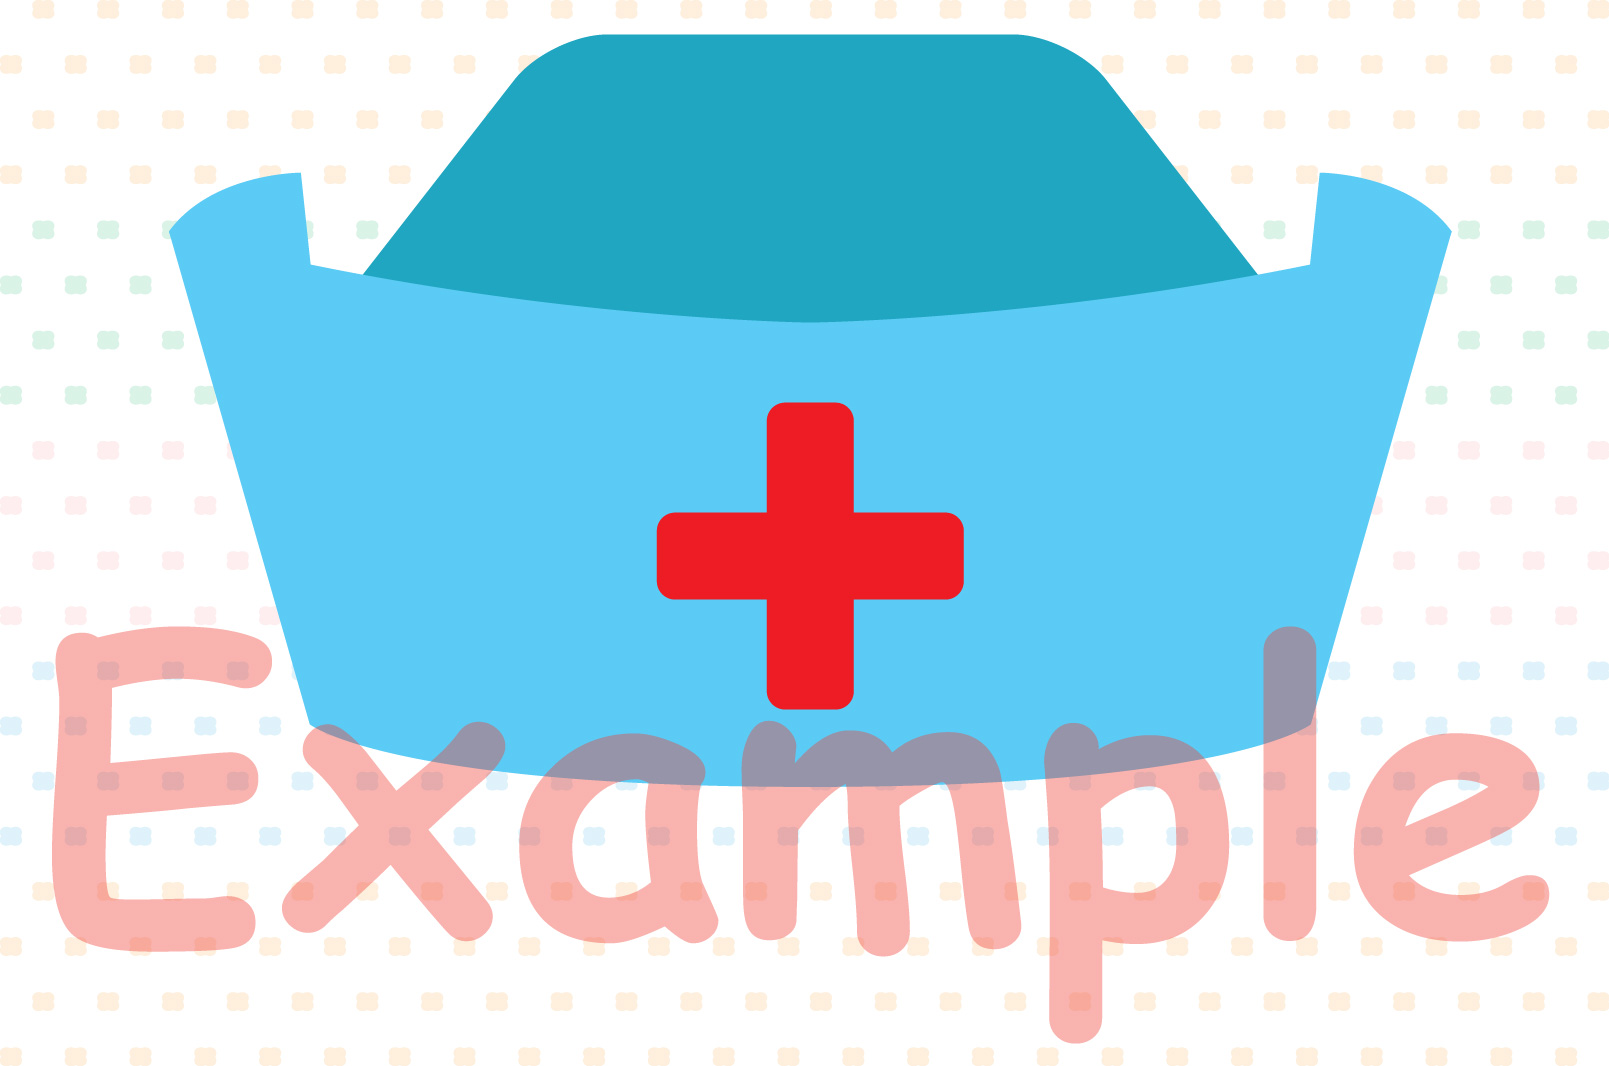 Doctor Medic Props Party Photo Booth SVG 206S example image 3